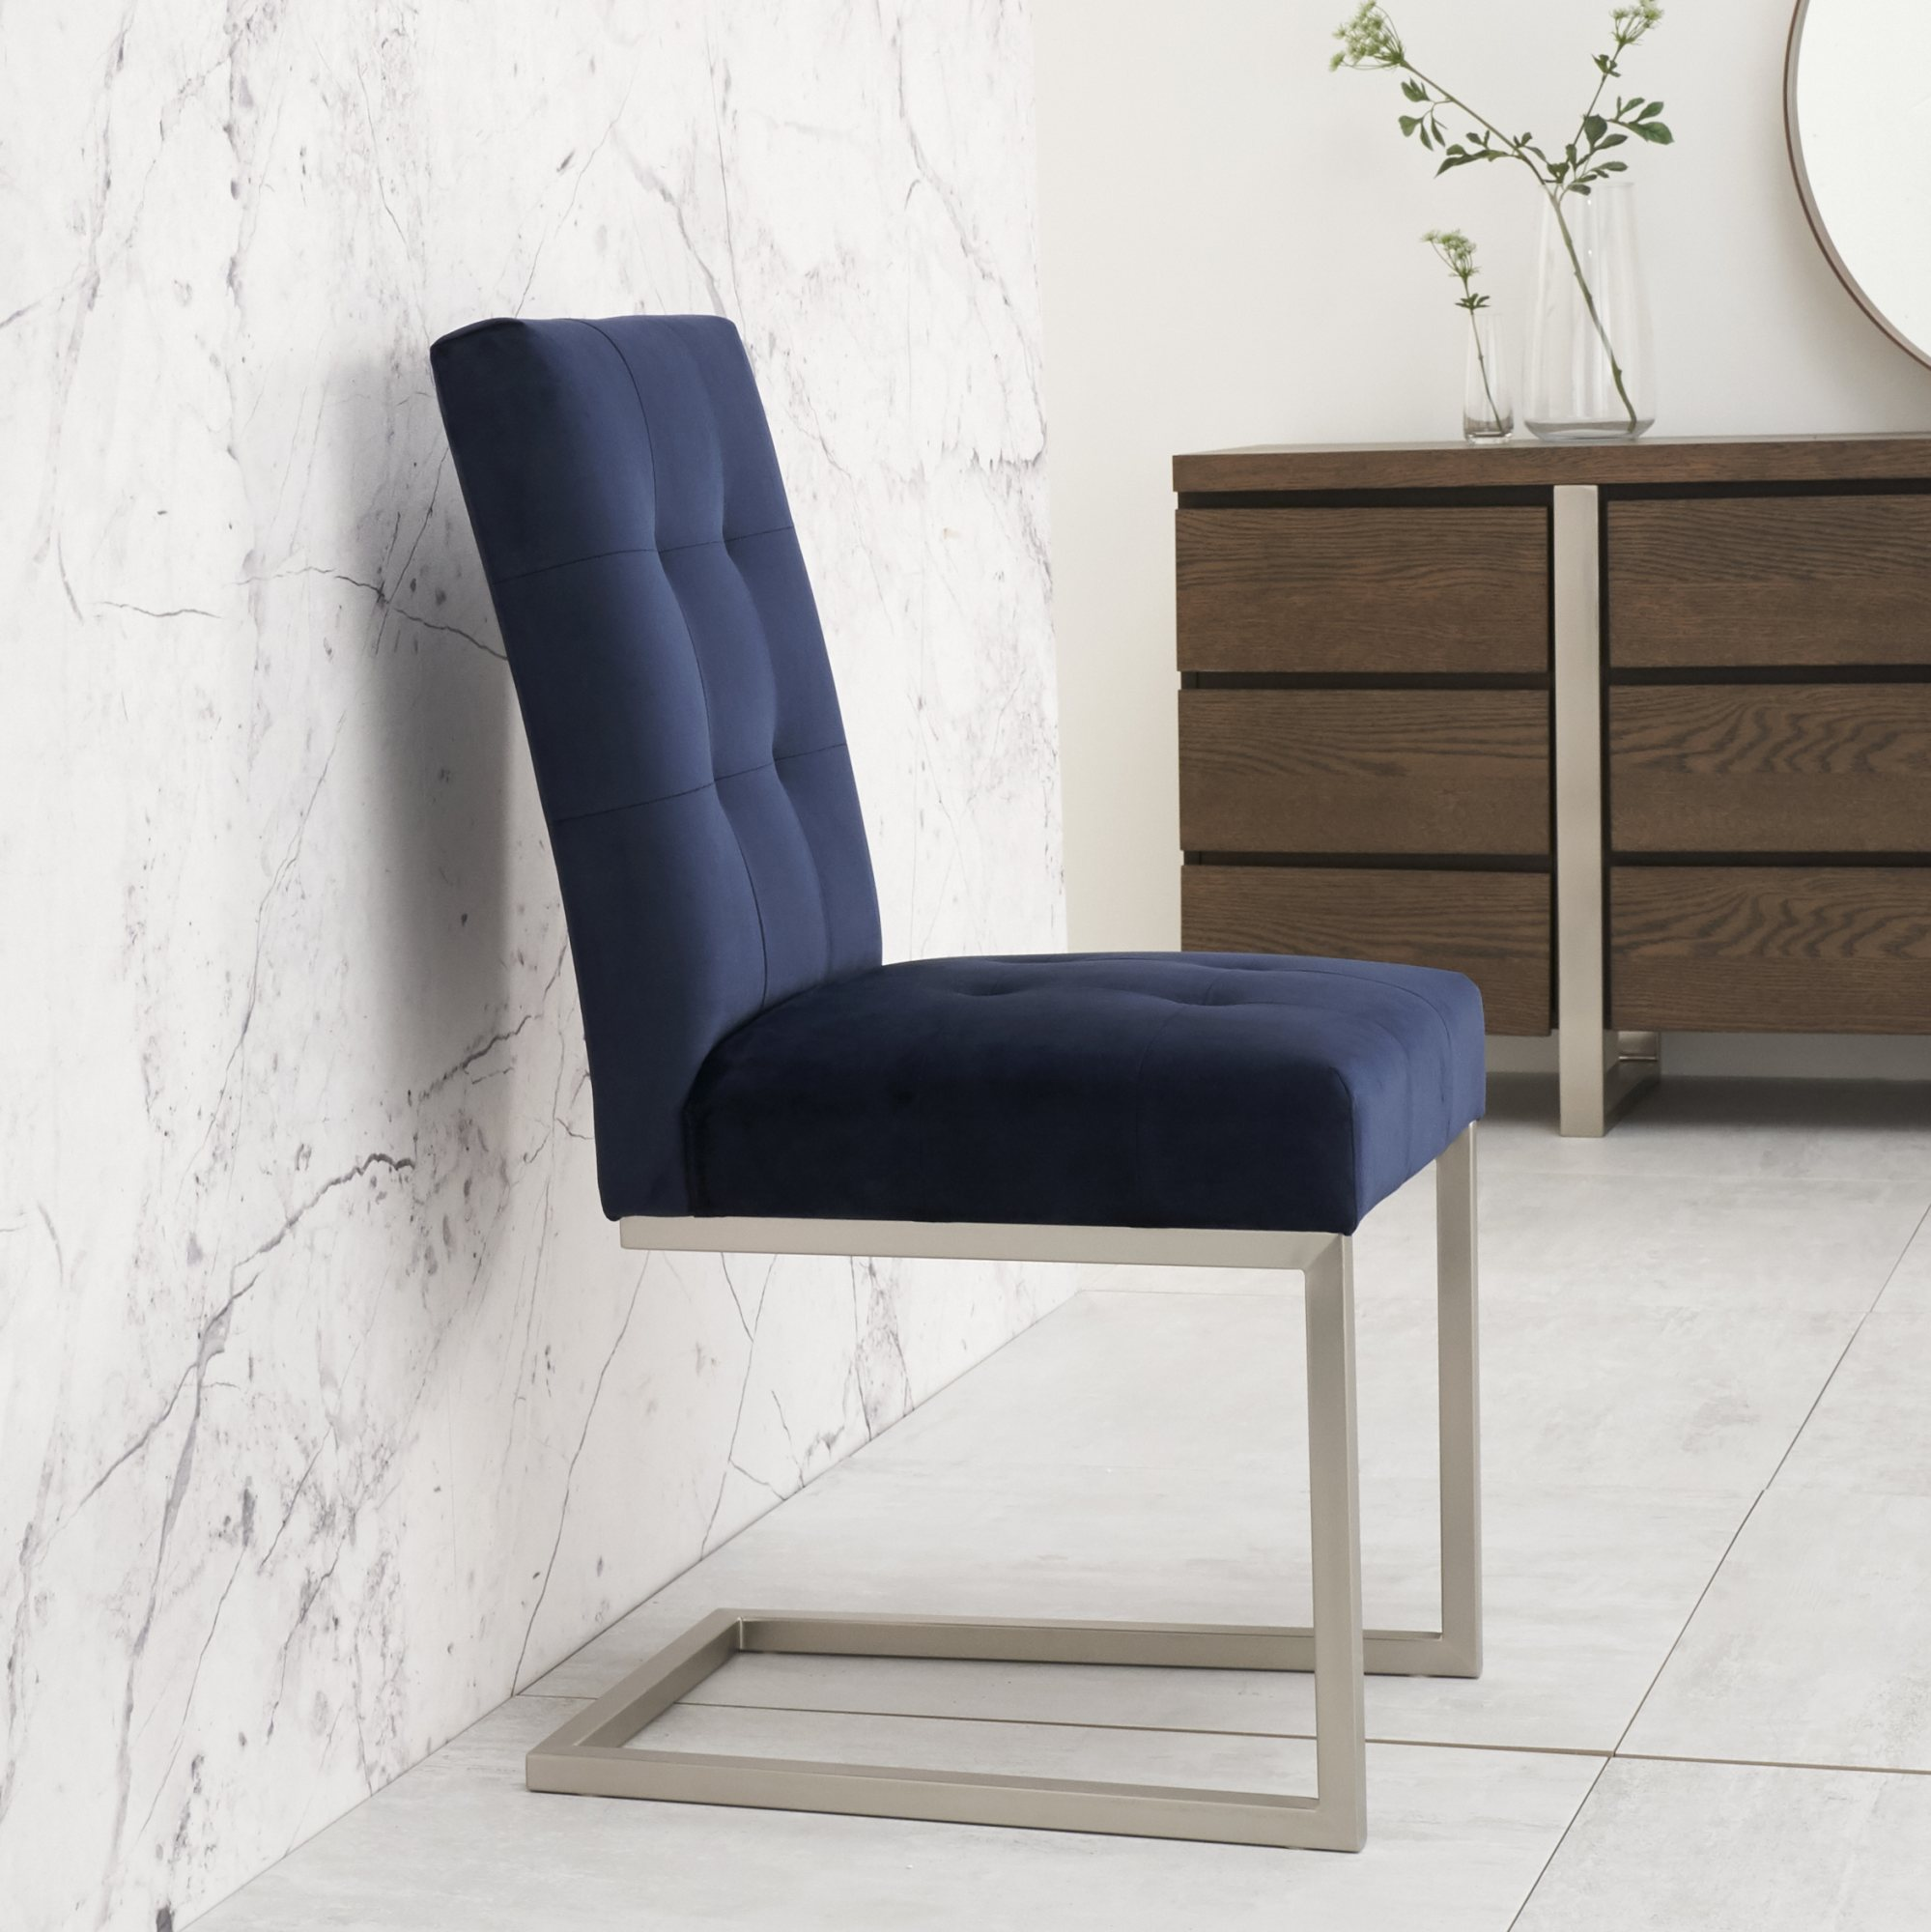 BRINDISI NAVY VELVET CANTER CHAIR SIDE VIEW